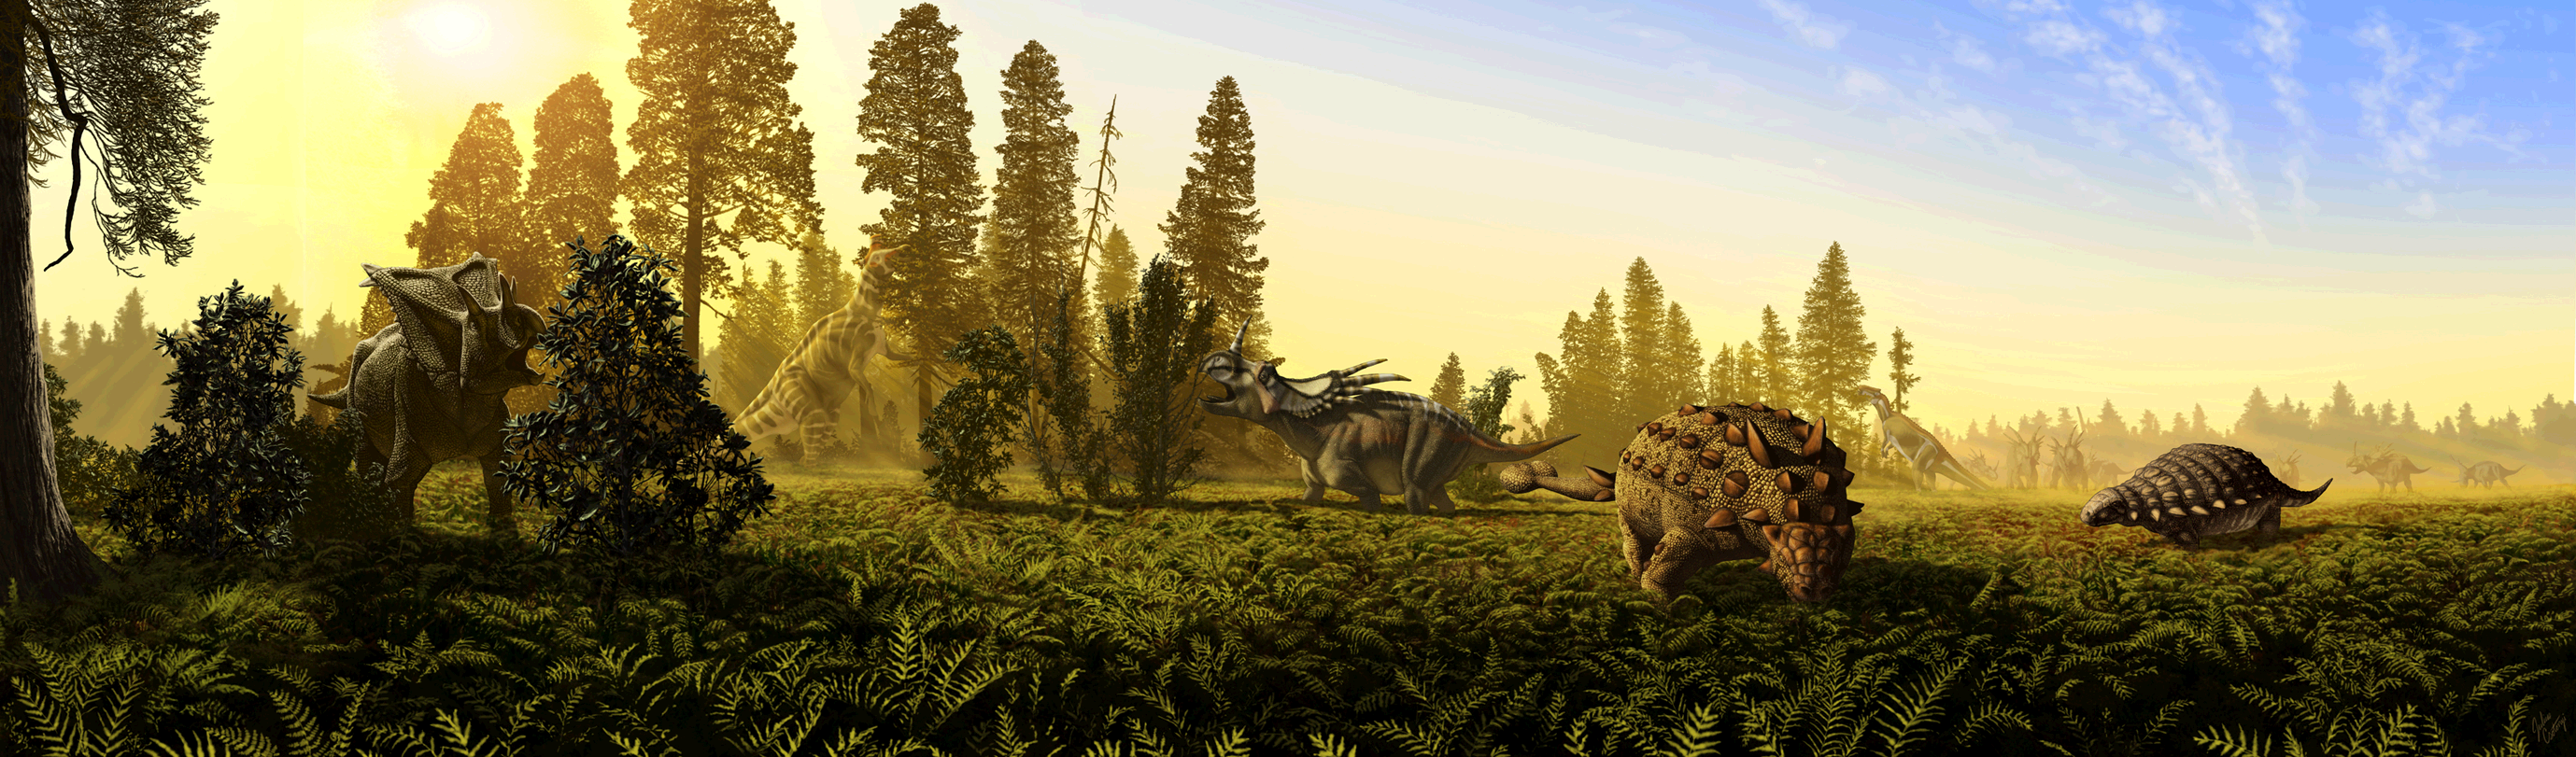 https://upload.wikimedia.org/wikipedia/commons/e/e9/Dinosaur_park_formation_fauna.png